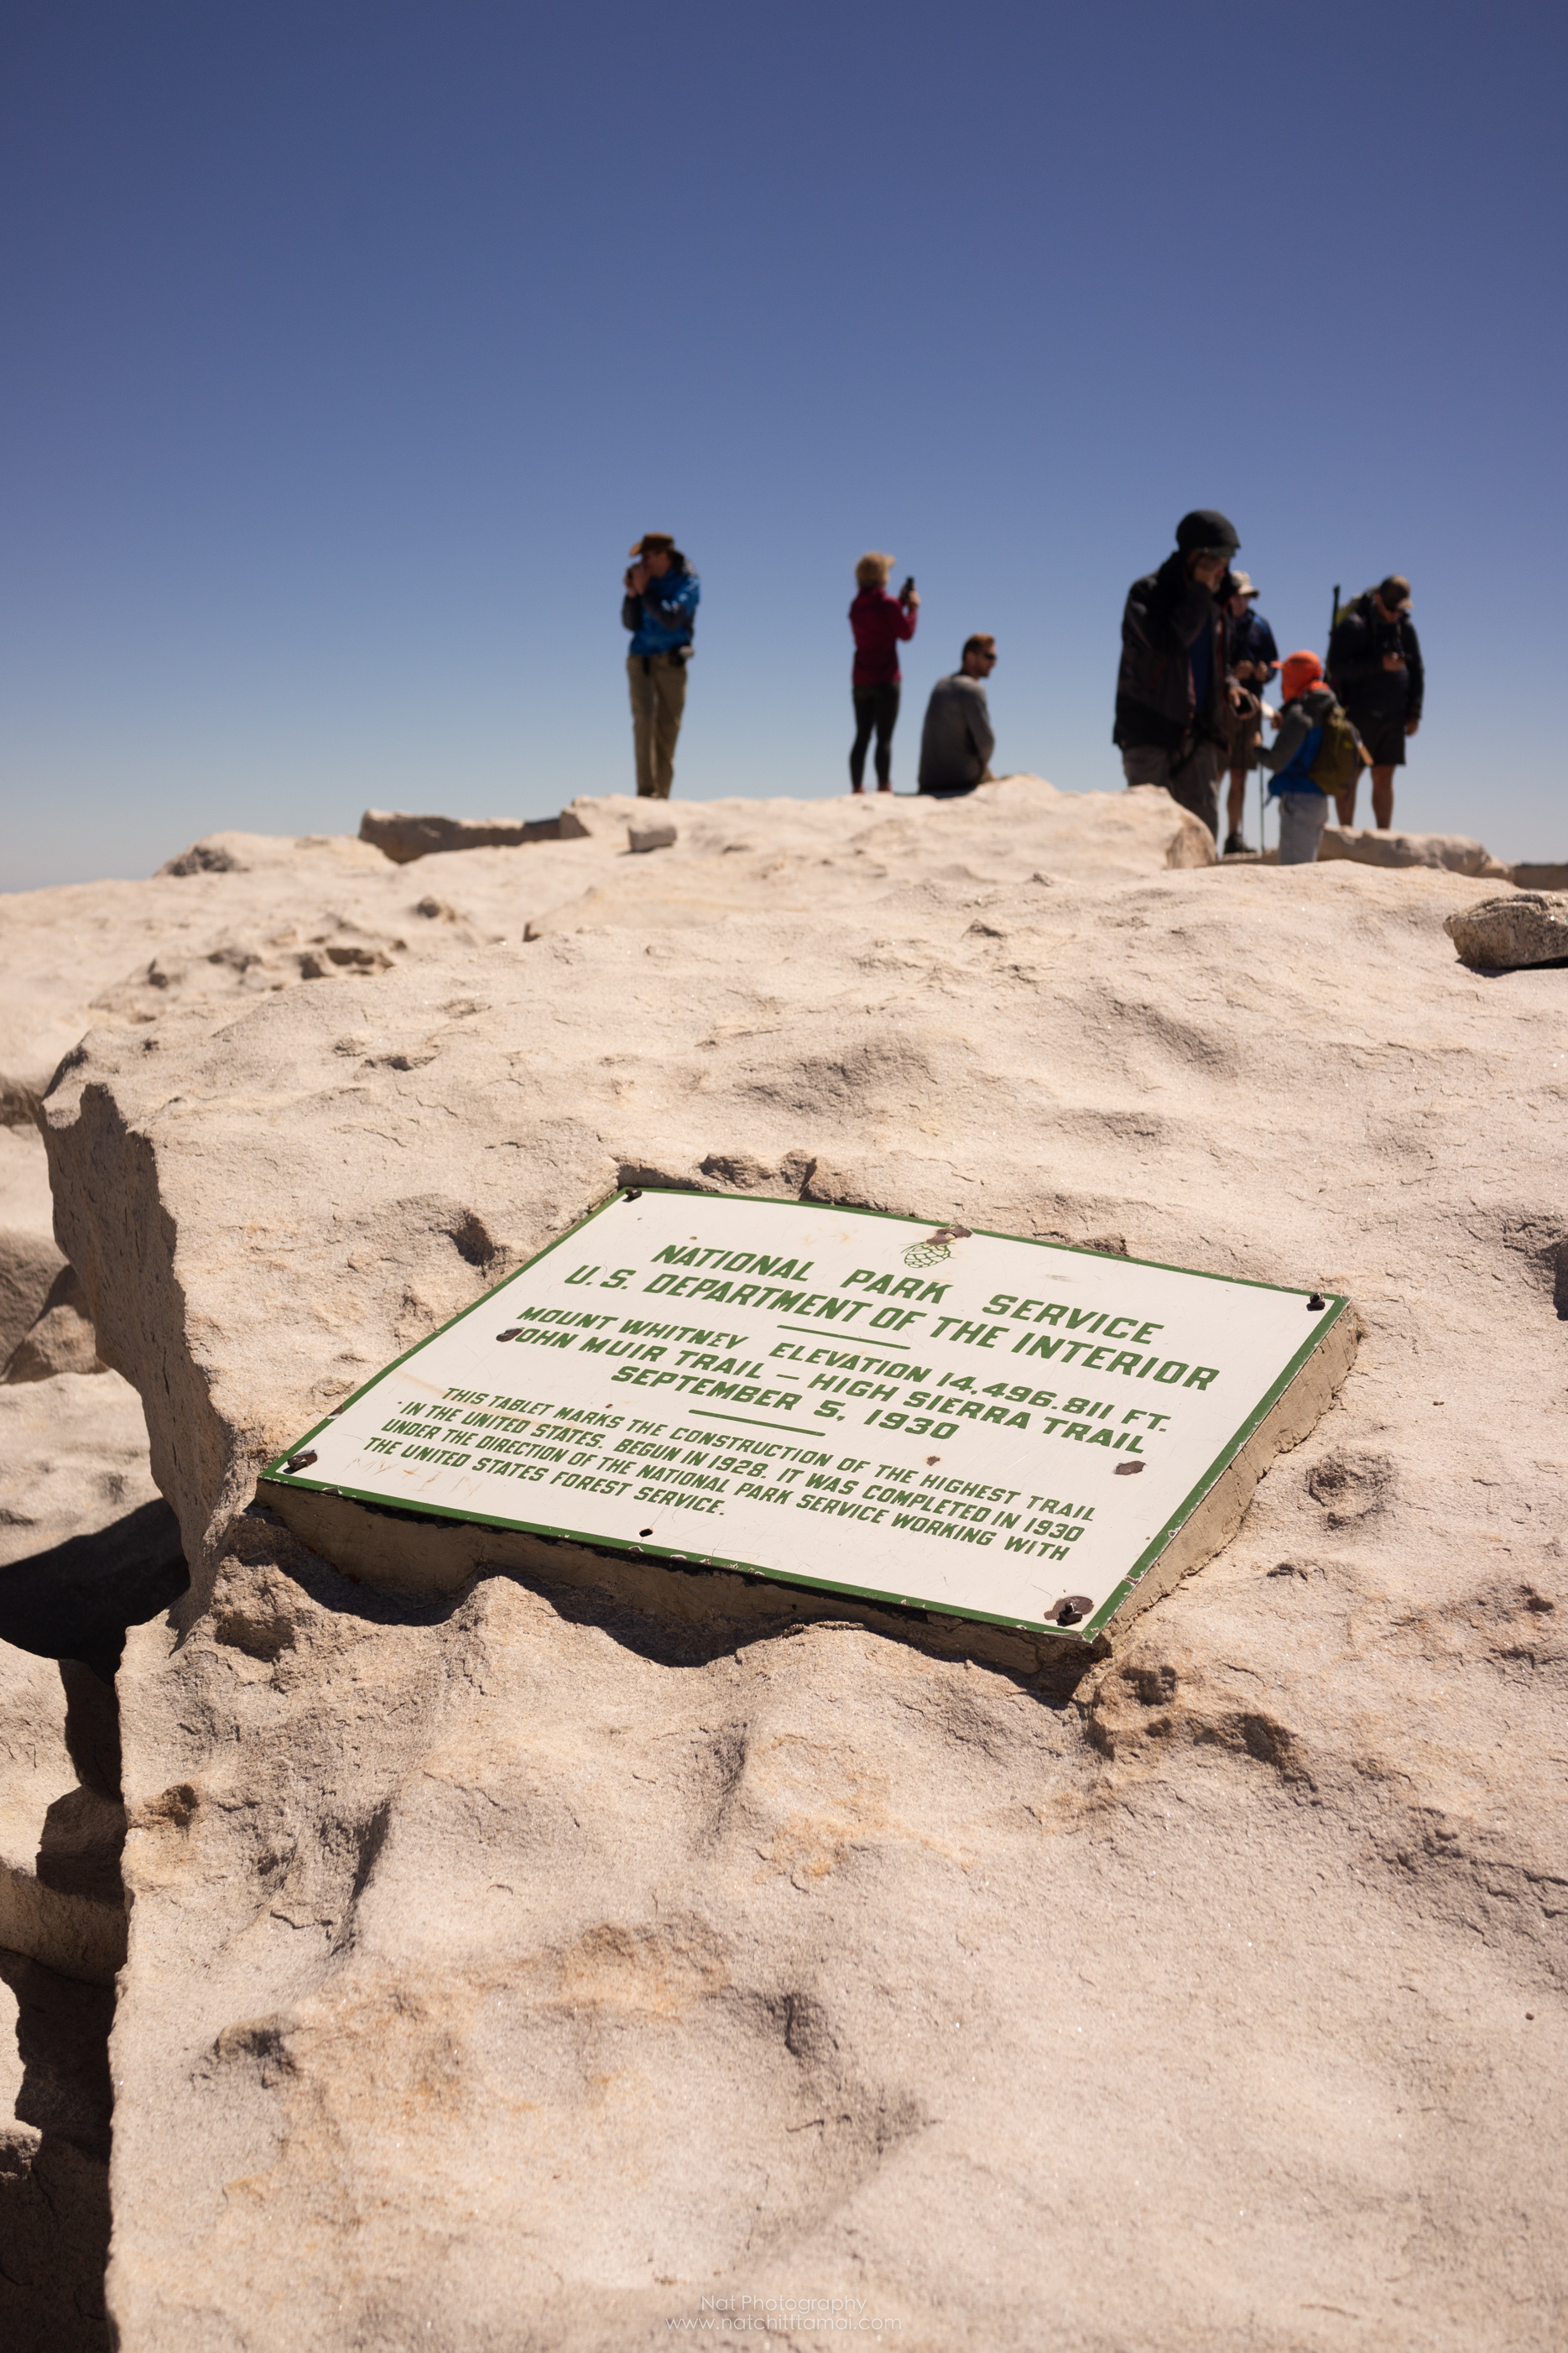 The sign from US NPS for 14,496.811 feet from 1930